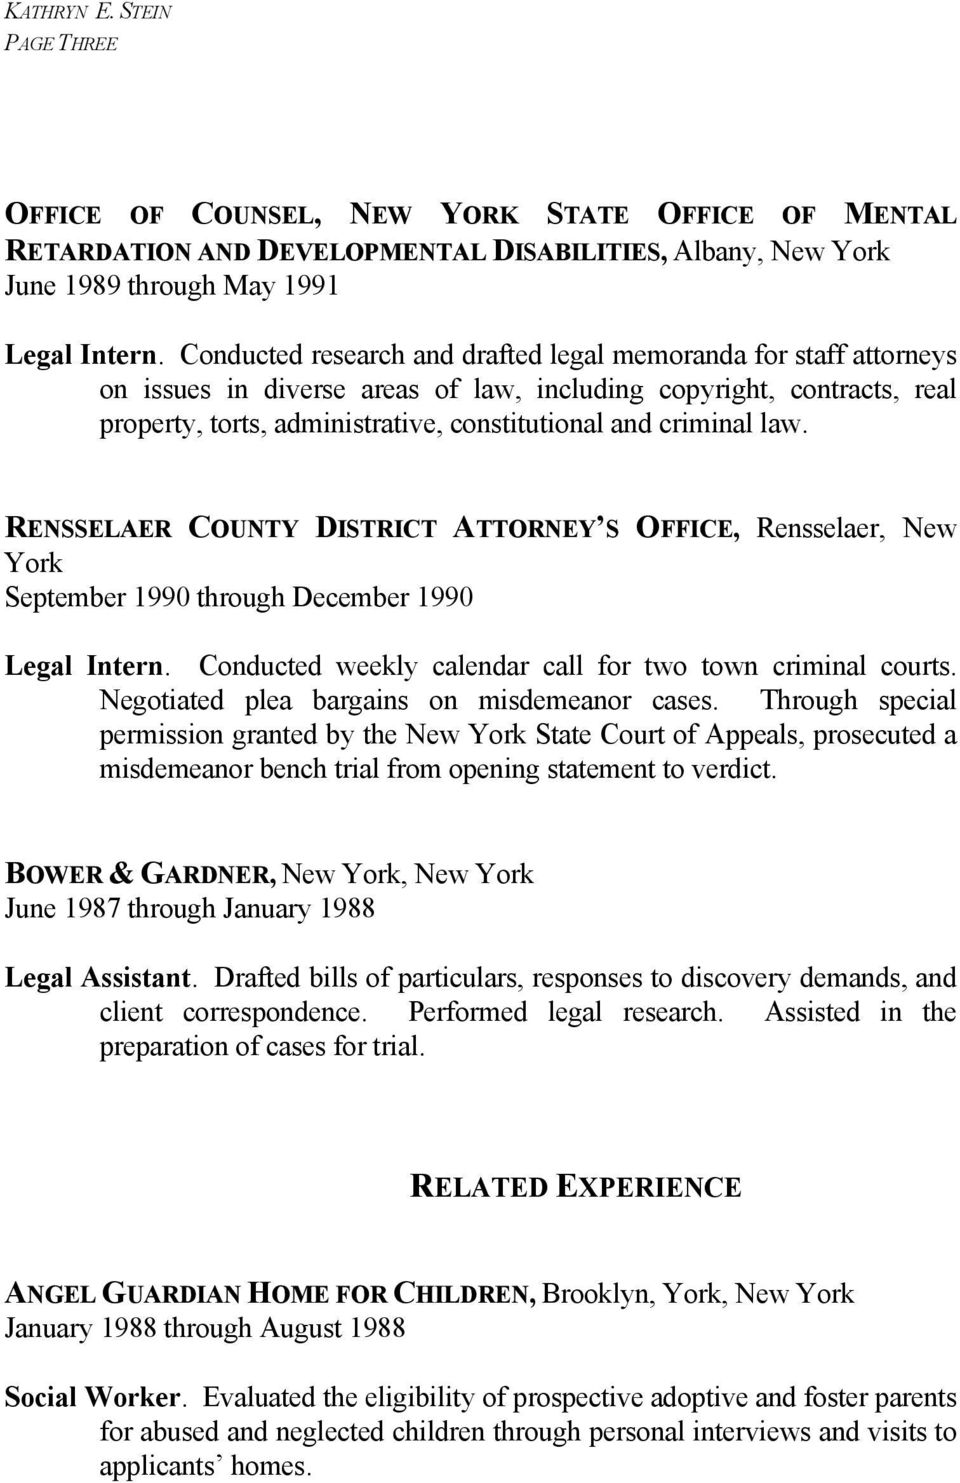 law. RENSSELAER COUNTY DISTRICT ATTORNEY S OFFICE, Rensselaer, New York September 1990 through December 1990 Legal Intern. Conducted weekly calendar call for two town criminal courts.